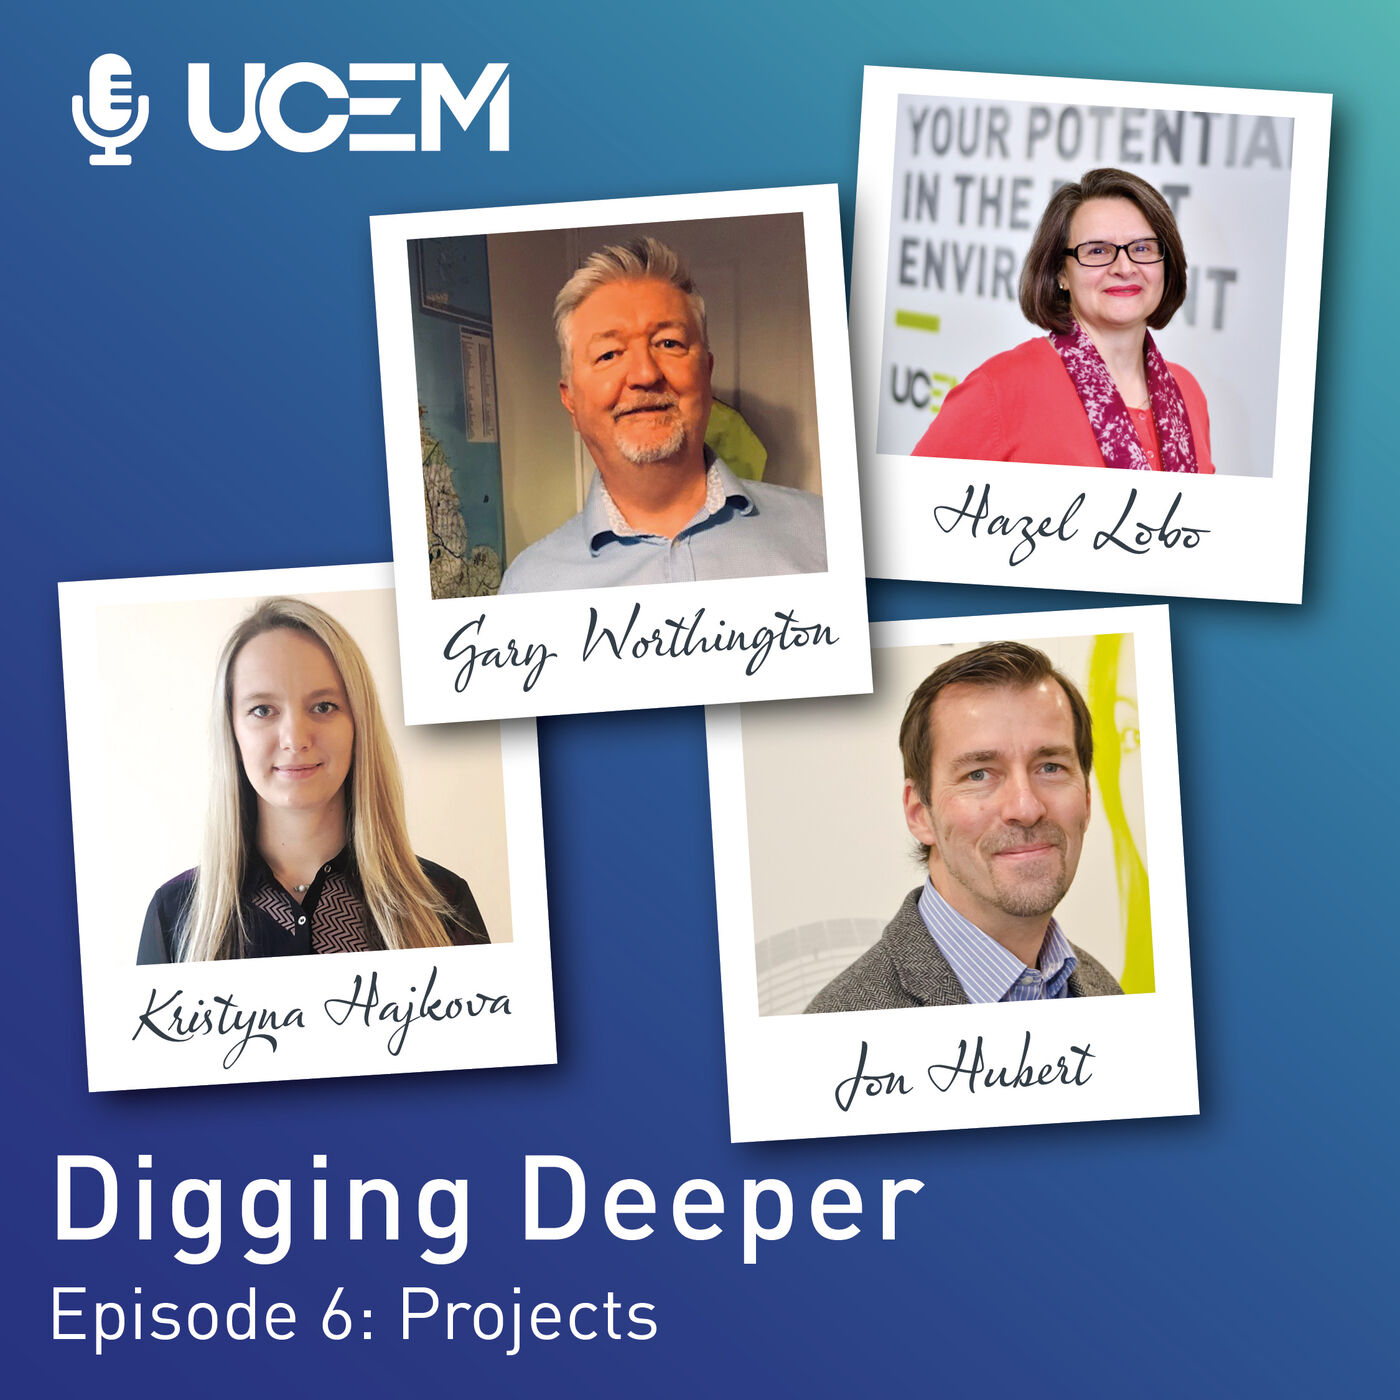 Digging Deeper - Episode 6: Projects